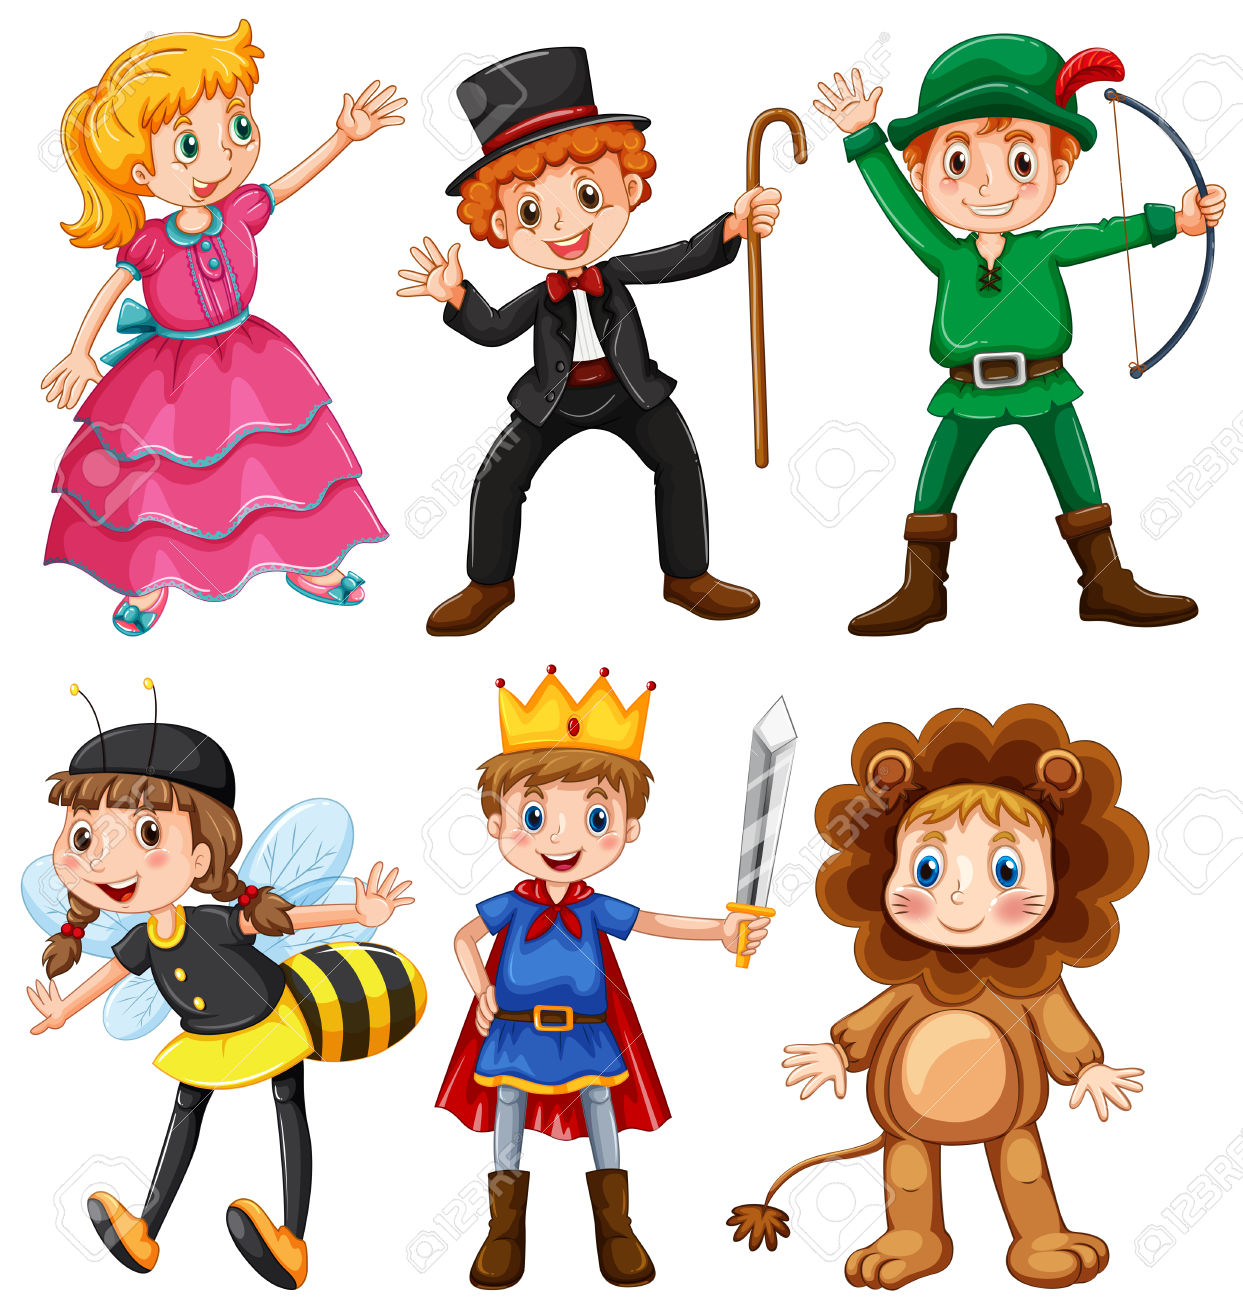 Clipart boy in prince costume.